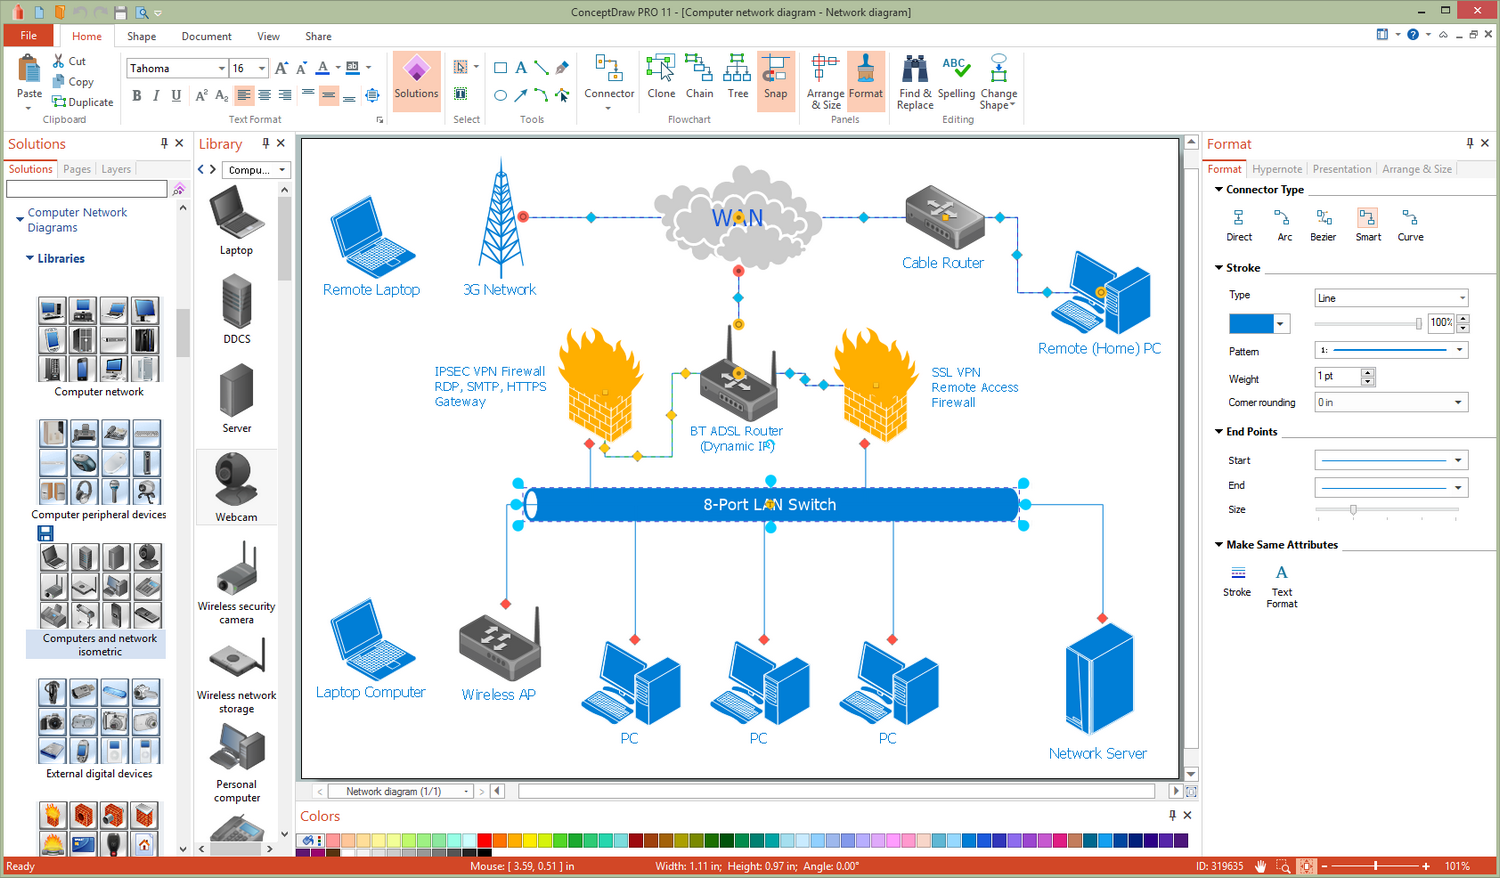 Computer Network Diagrams Solution for Microsoft Windows